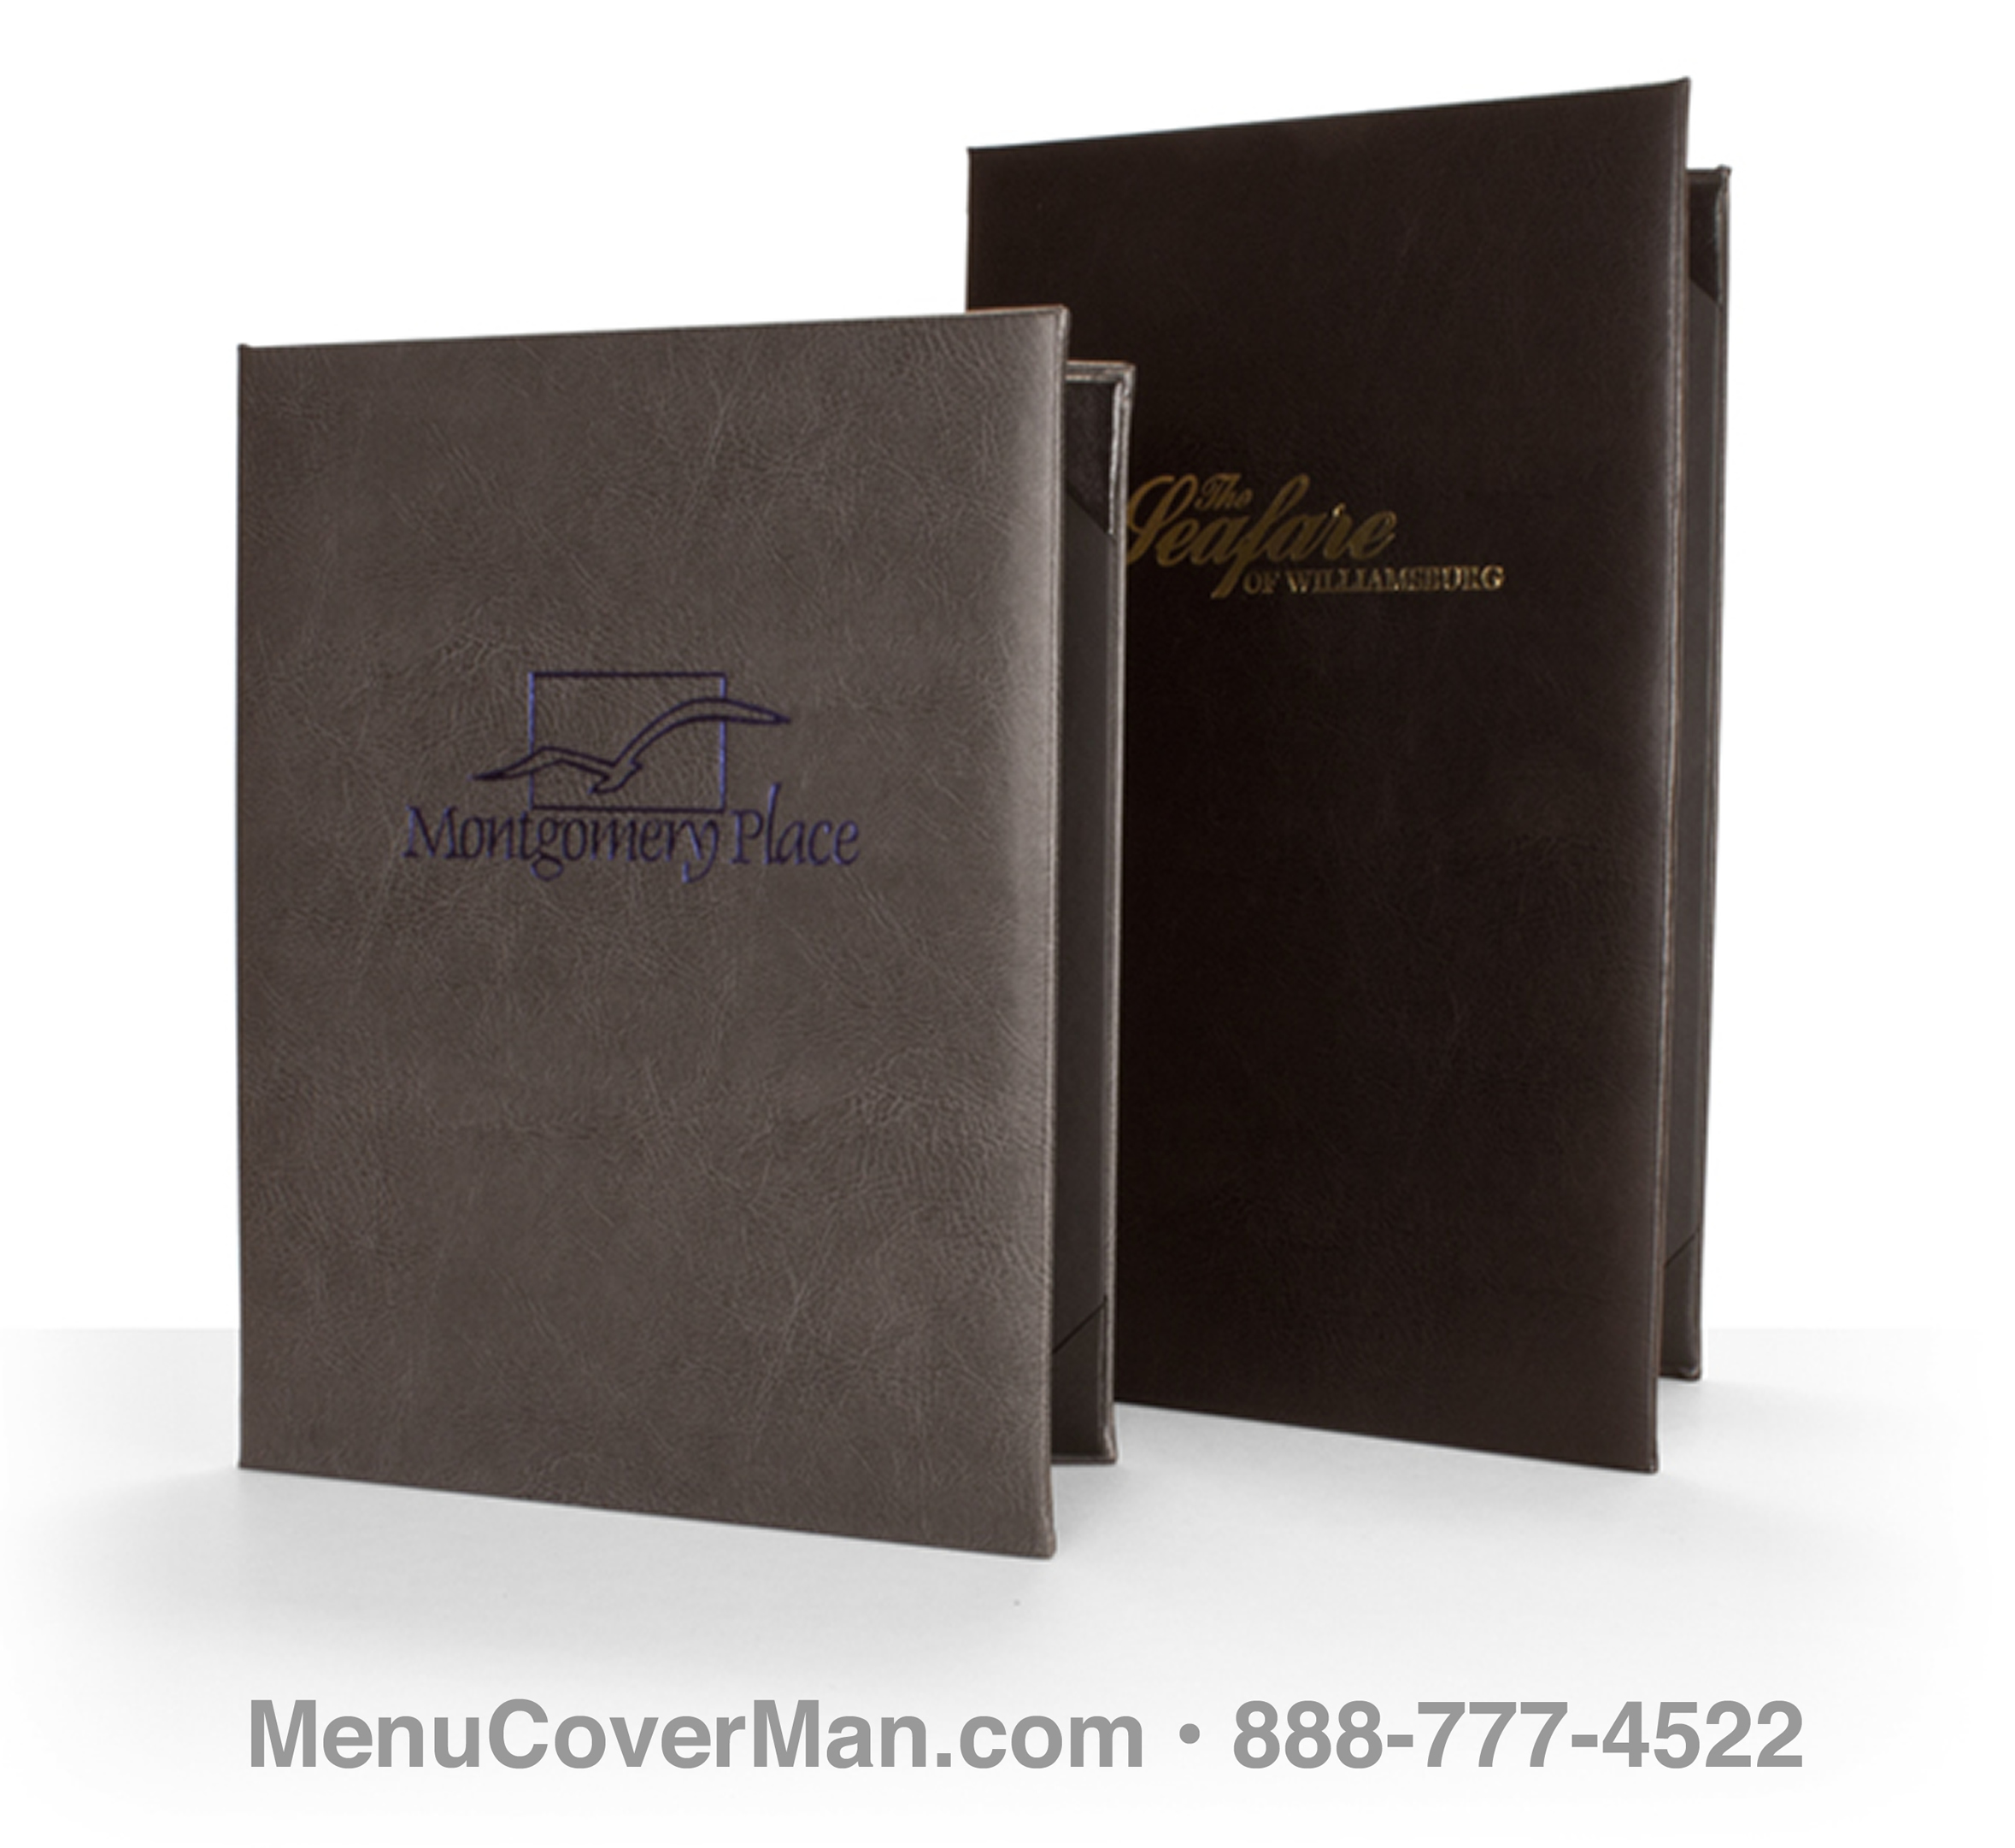 Tamarac Menu Covers Frontspiece.